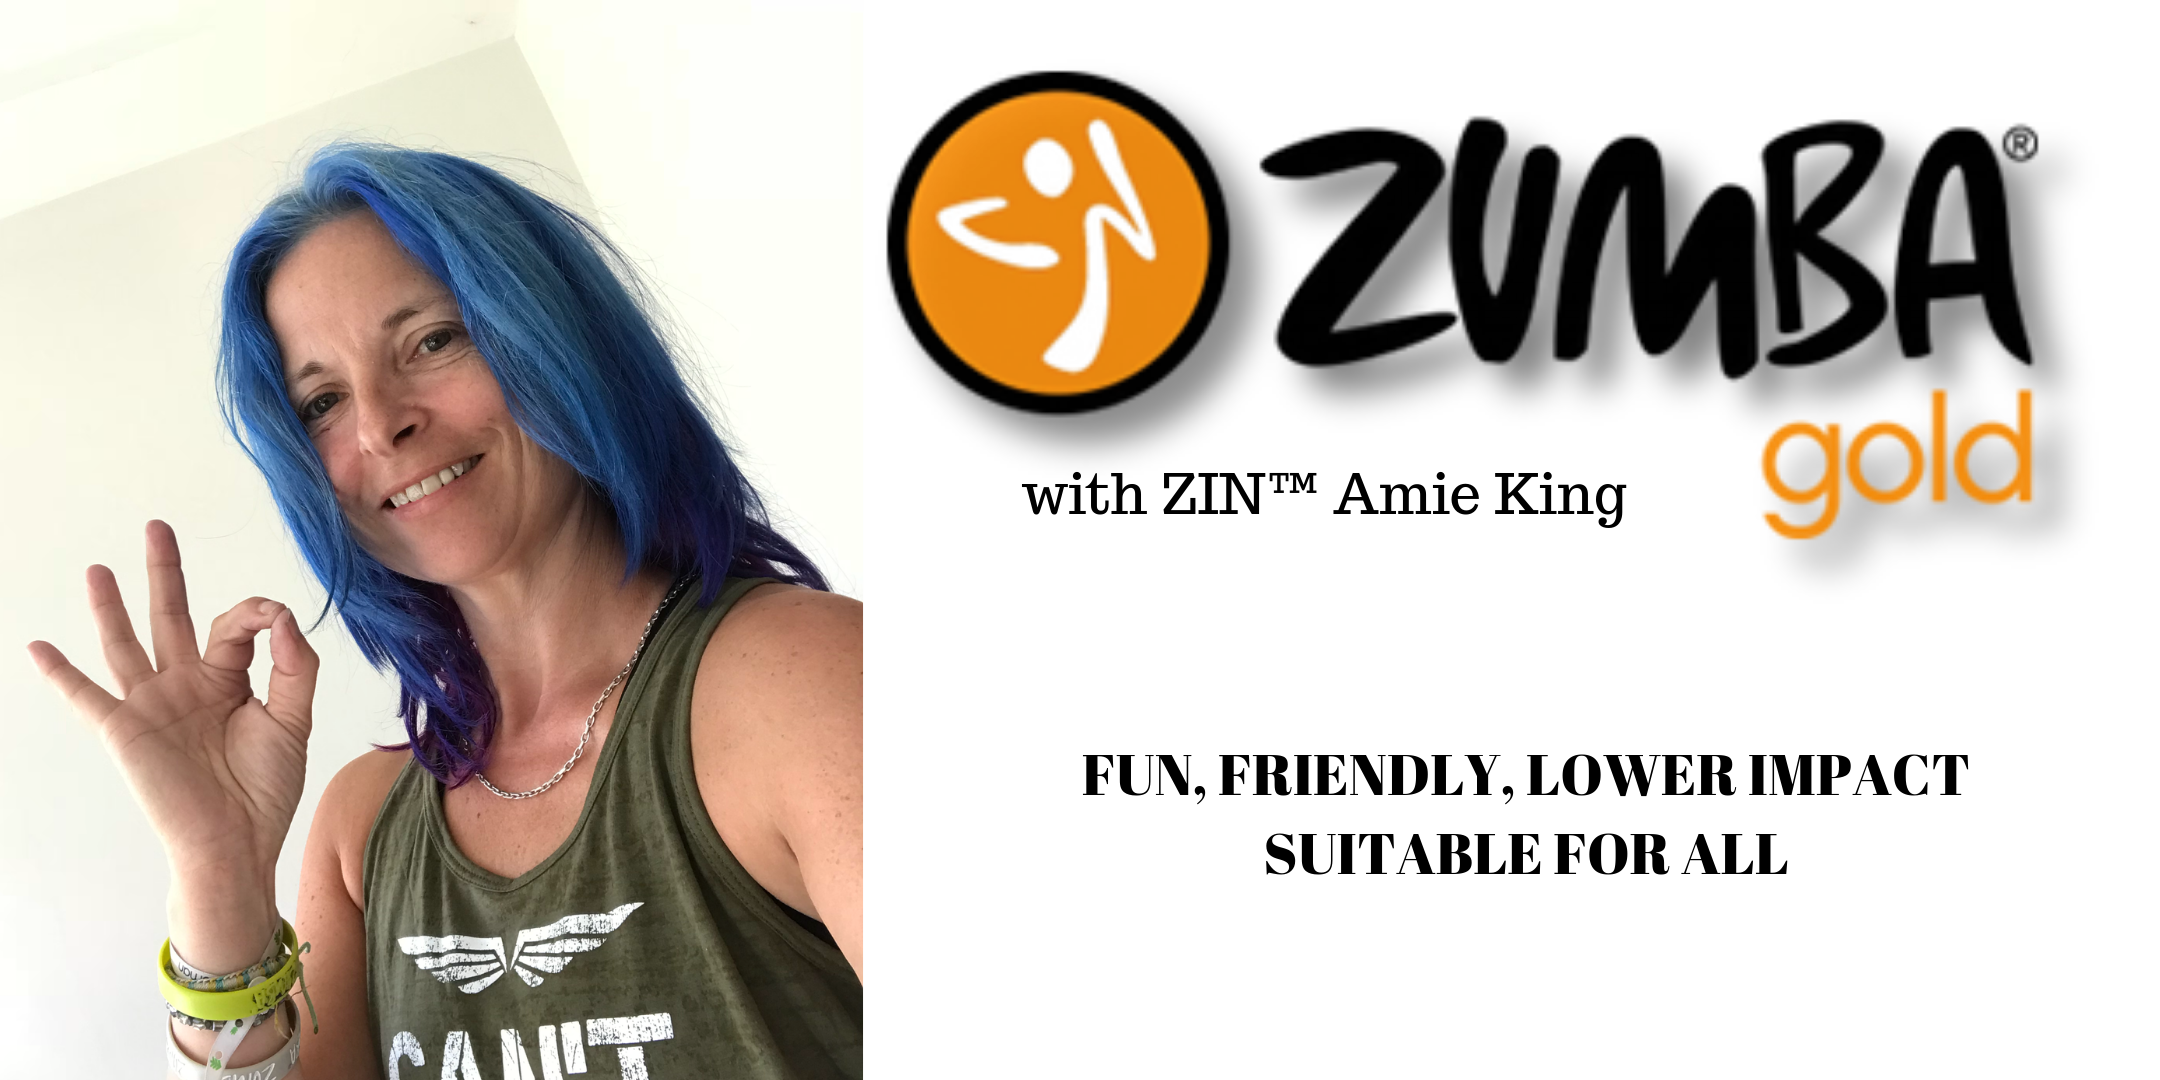 SUSPENDED UNTIL FURTHER NOTICE - Wednesday - 10 am - 11 am - Zumba Gold® with ZIN™ Amie King - Almondsbury Creative, Almondsbury